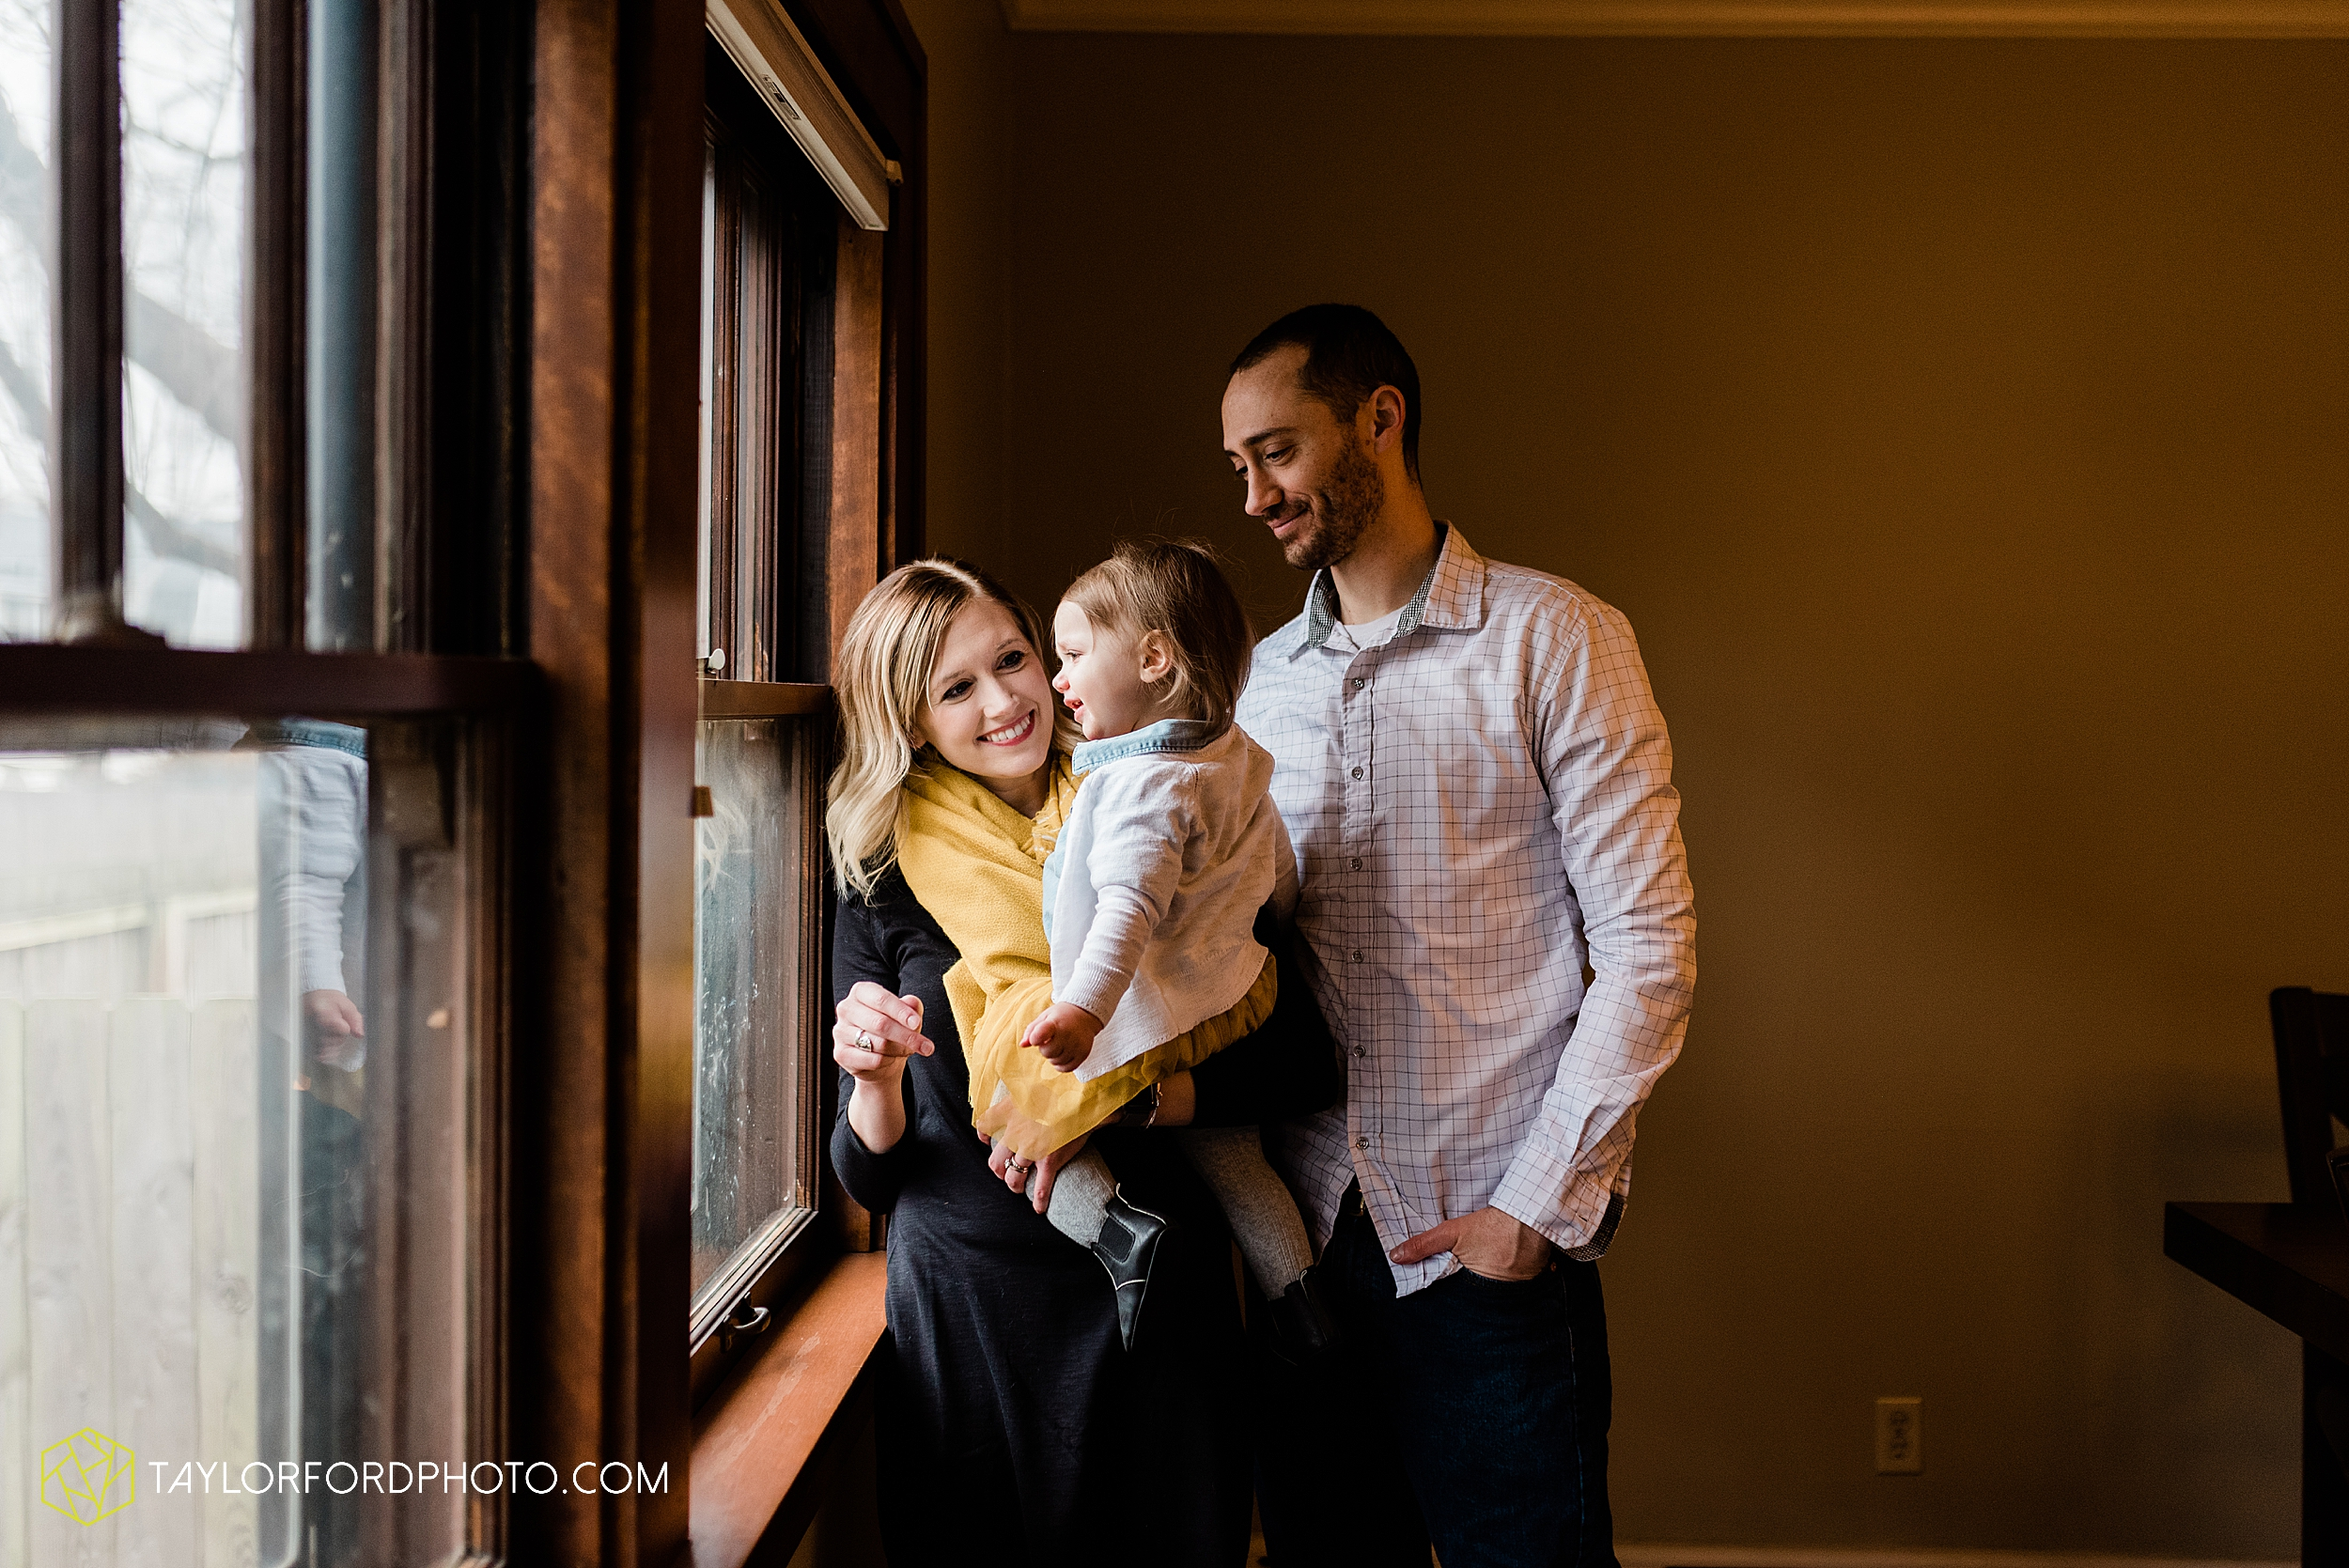 starbucks-one-1-year-old-brita-downtown-grand-wayne-at-home-family-fort-wayne-indiana-photography-taylor-ford-hirschy-photographer_2408.jpg